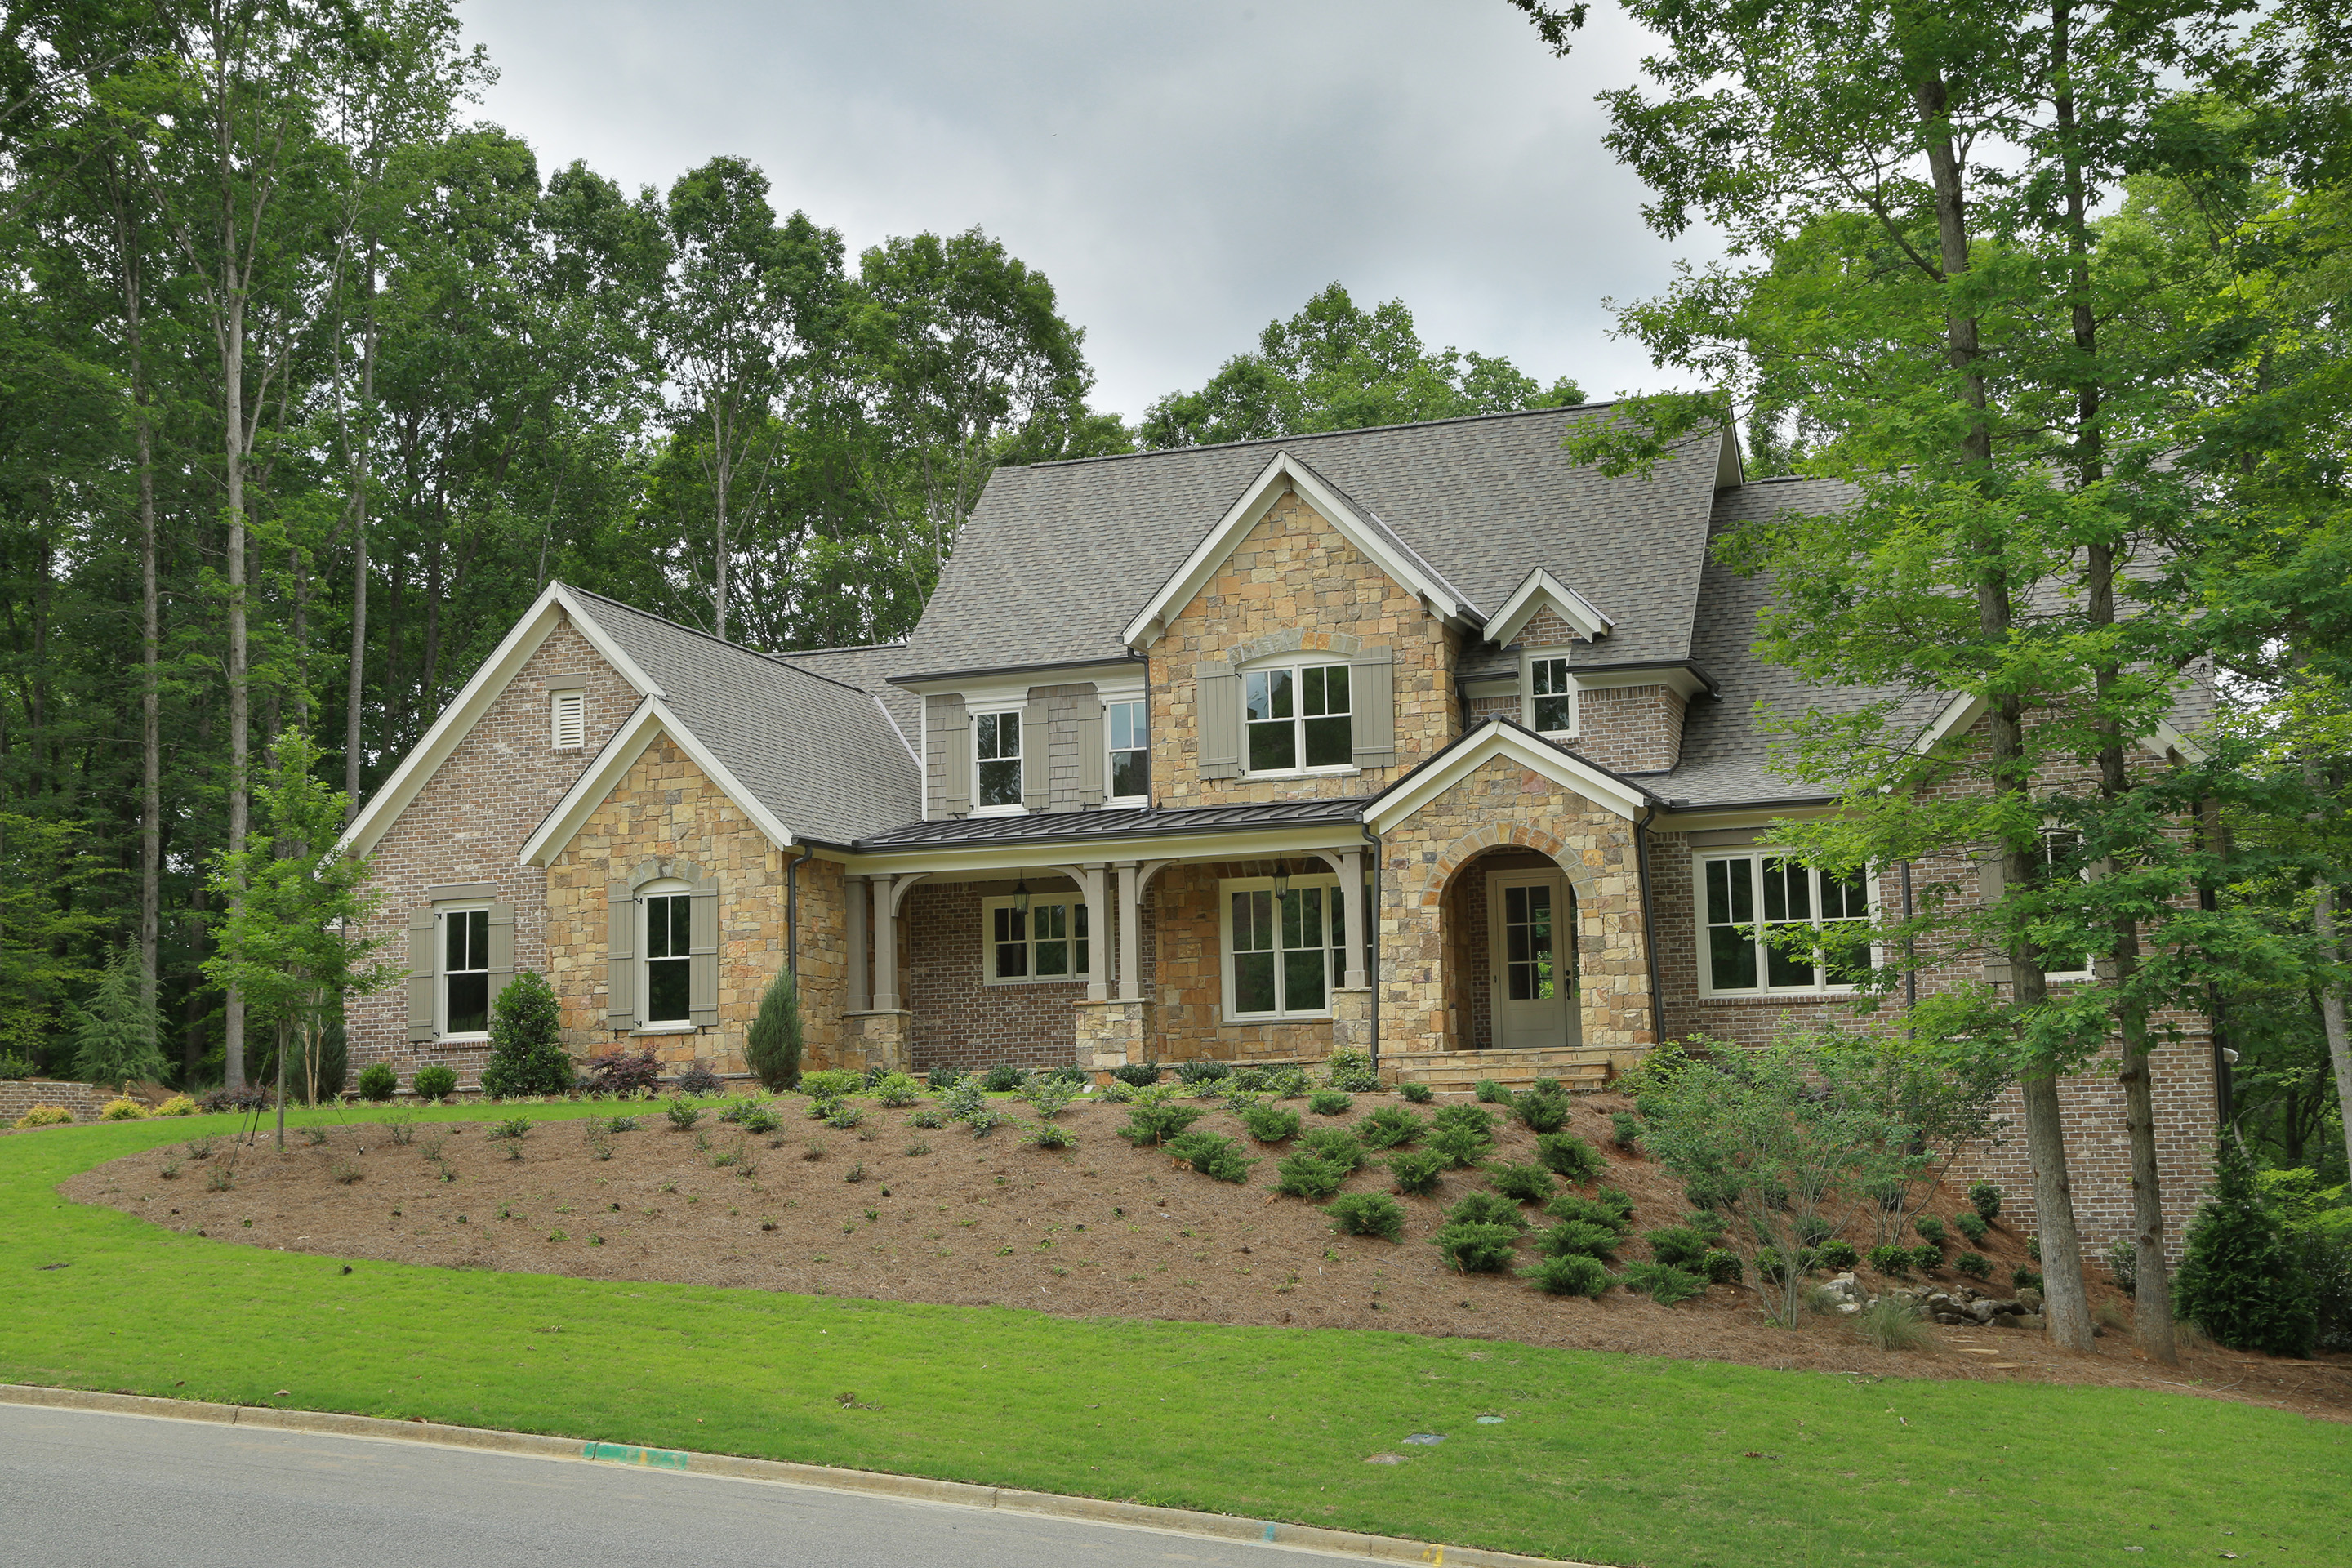 Casa Unifamiliar por un Venta en New Home at the River Club 5182 Boulder Bluff Way Suwanee, Georgia, 30024 Estados Unidos